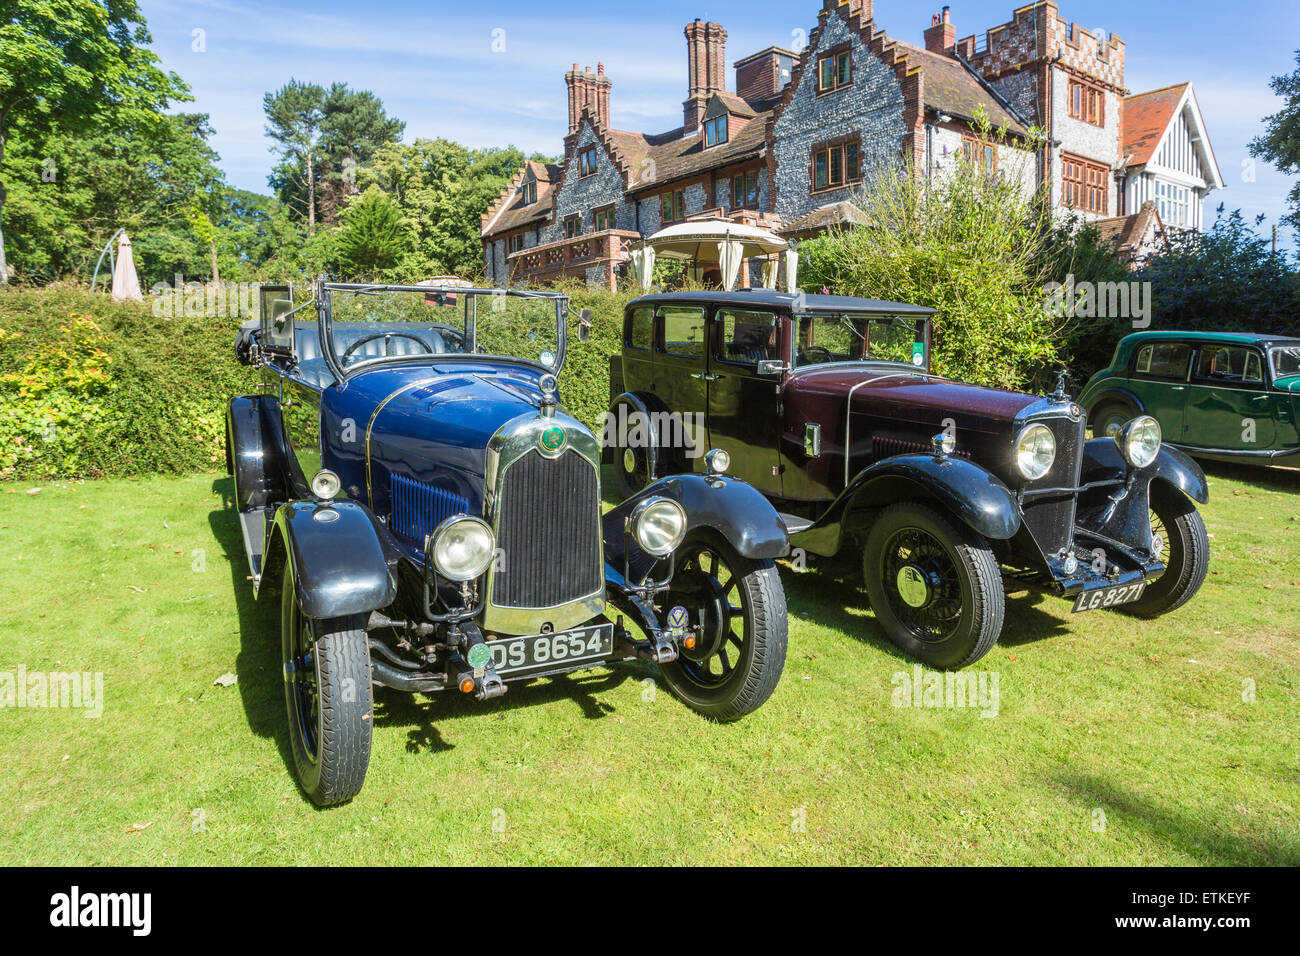 English Classic Cars Stock Photos & English Classic Cars Stock ...